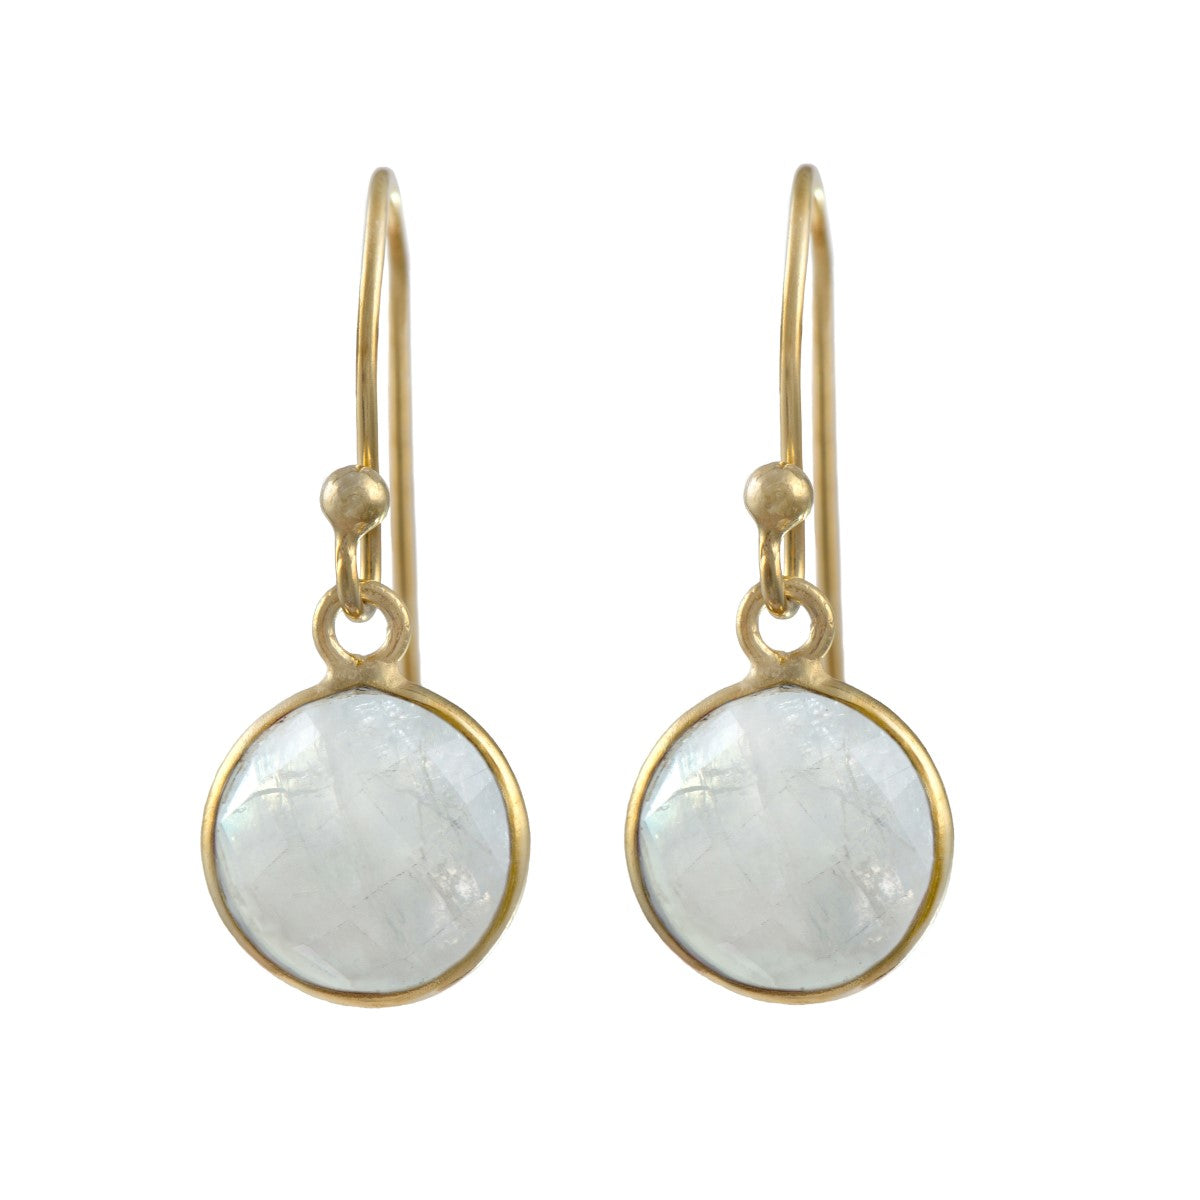 Moonstone Gemstone Earrings in Gold Plated Sterling Silver - Round